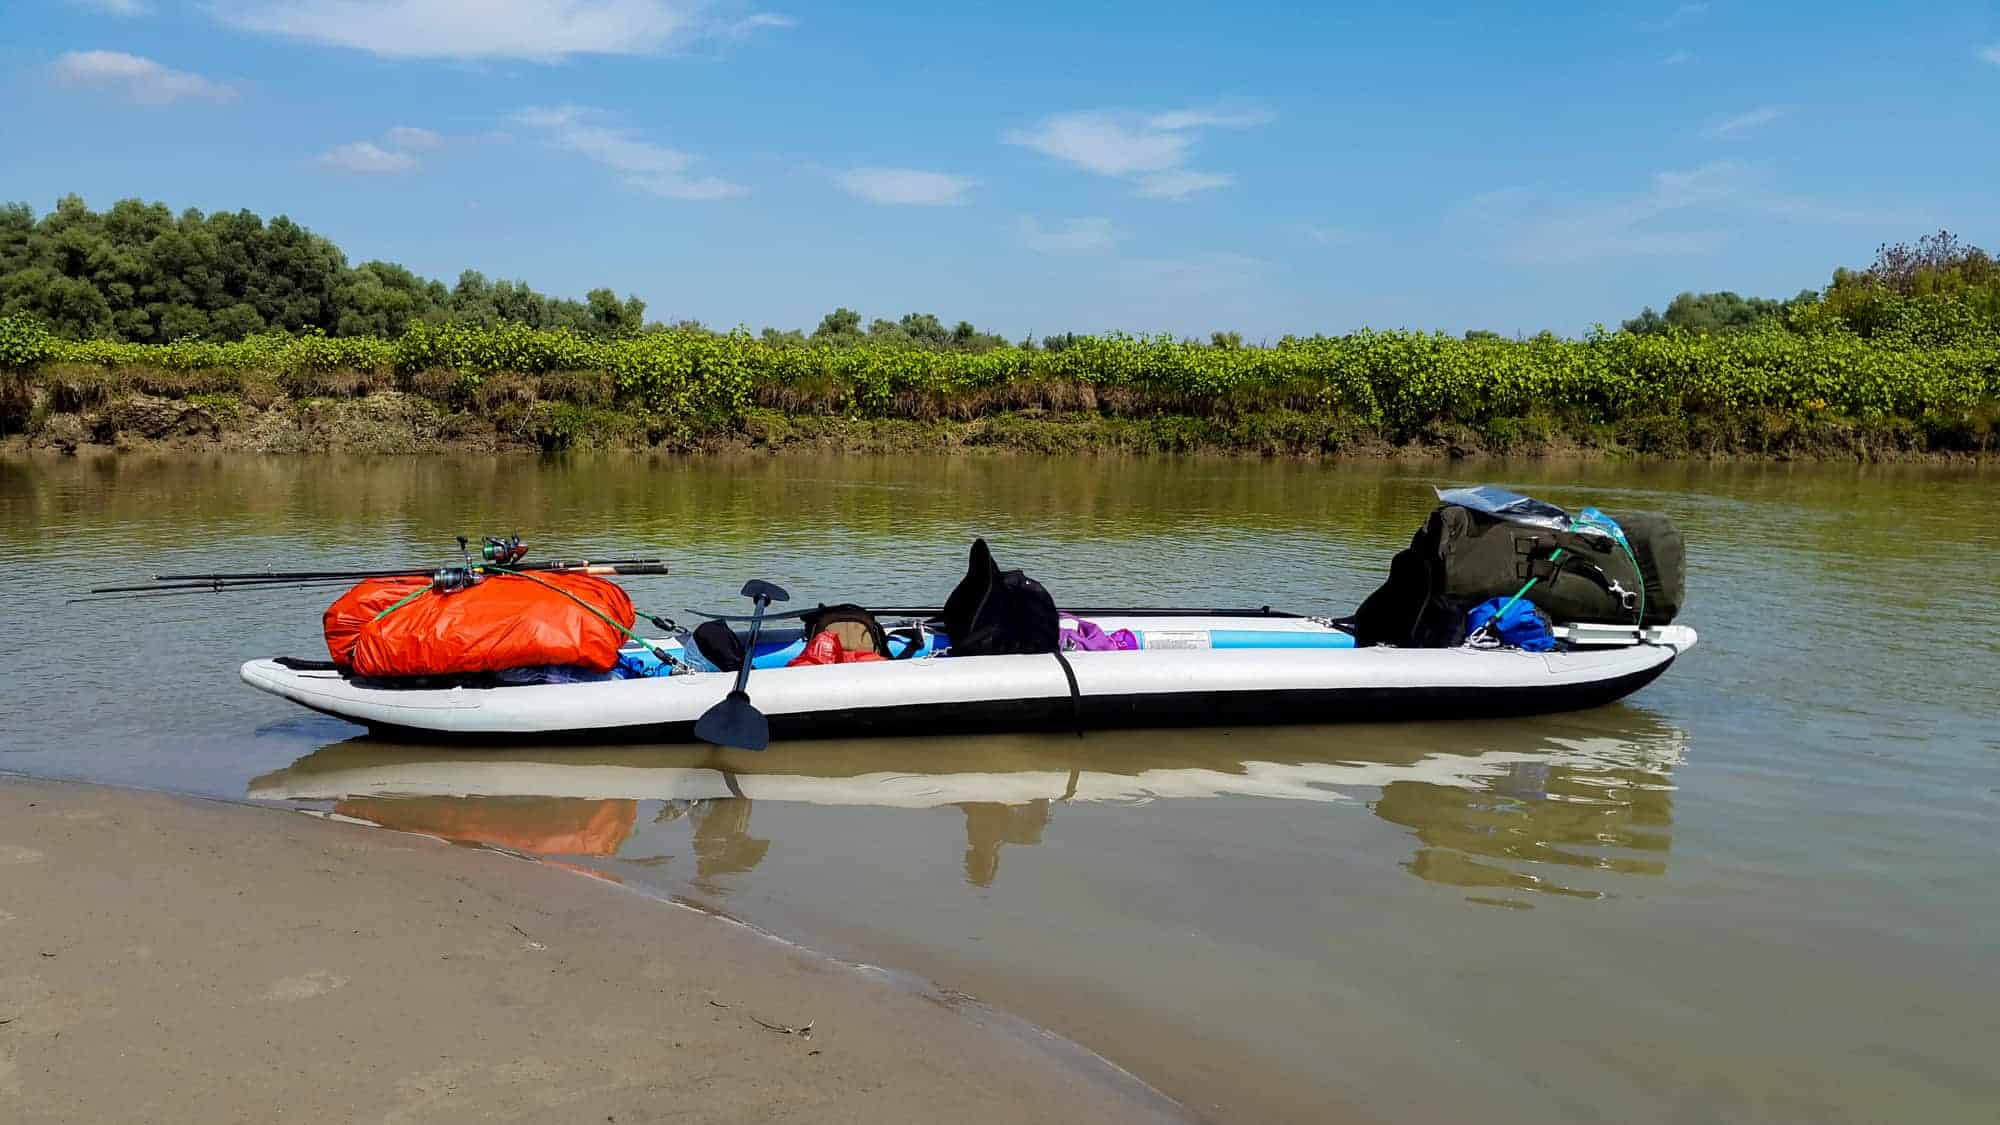 A double person inflatable kayak equipped for touring in a sunny summer